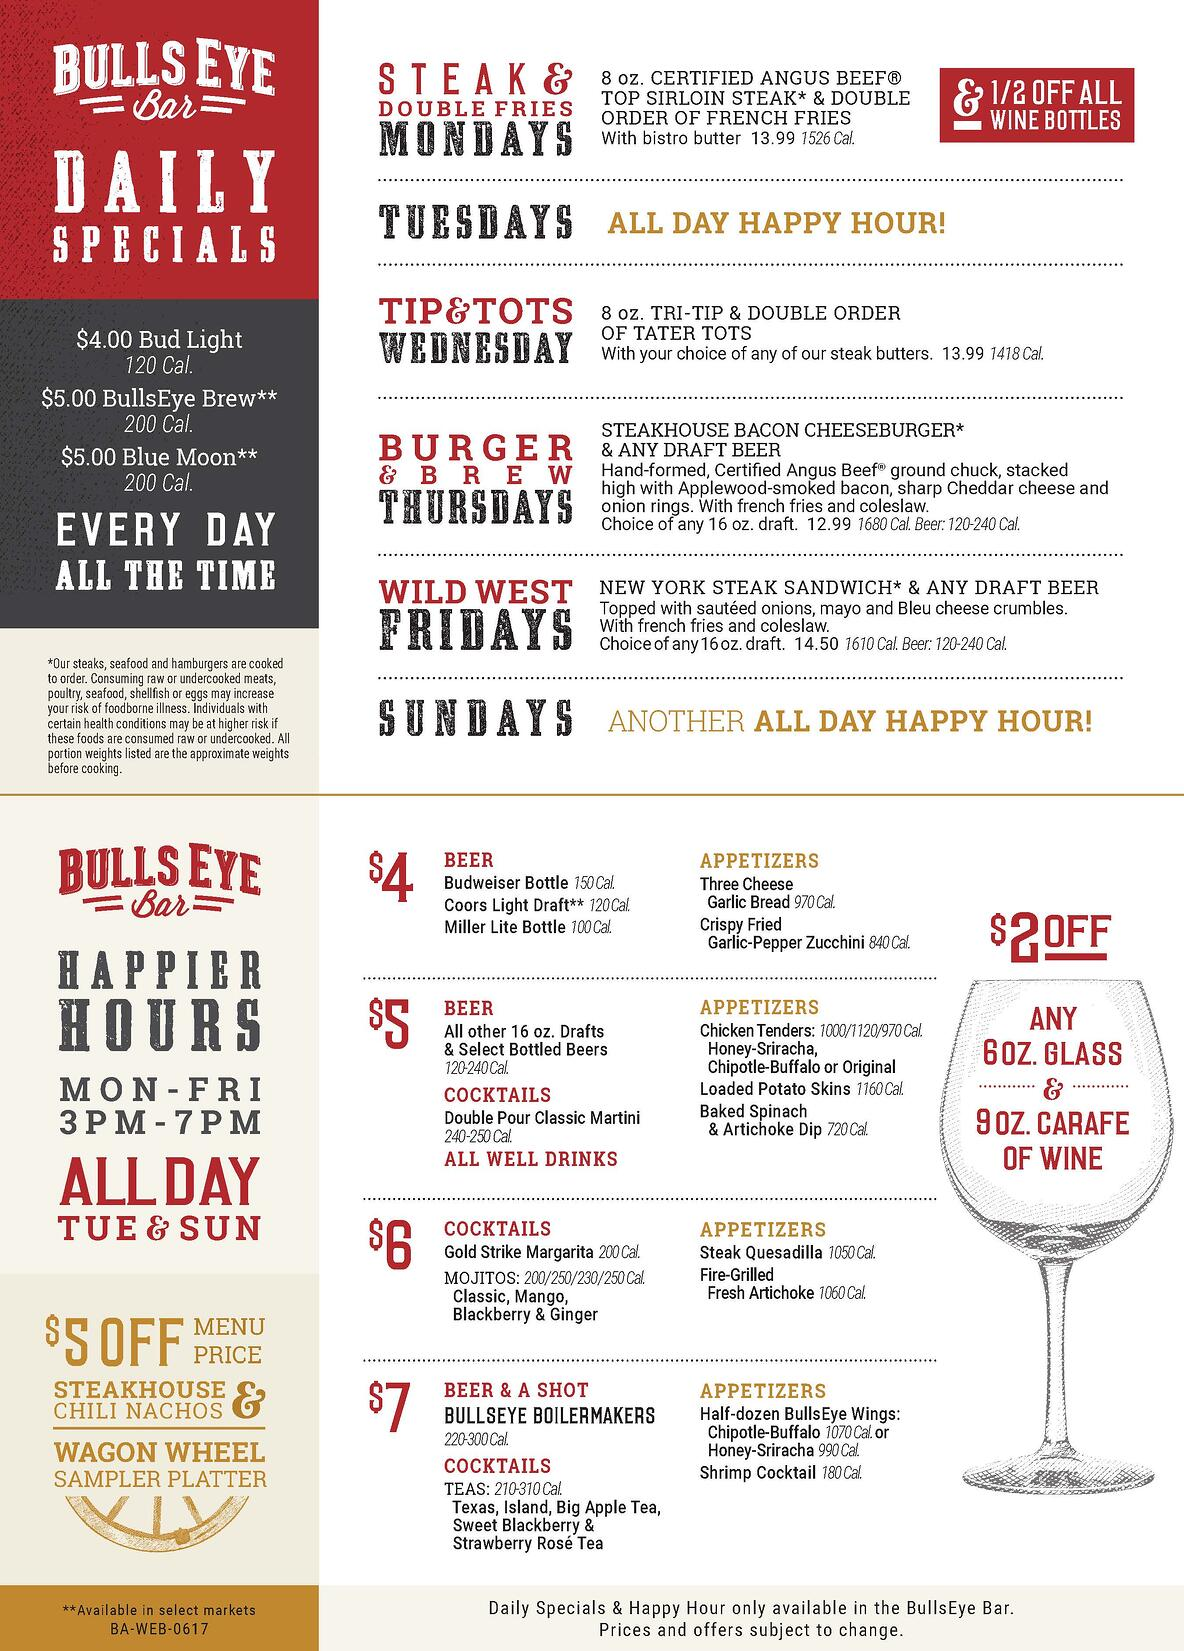 4-creative-happy-hour-restaurant-menu-design-ideas-youll-love.jpg